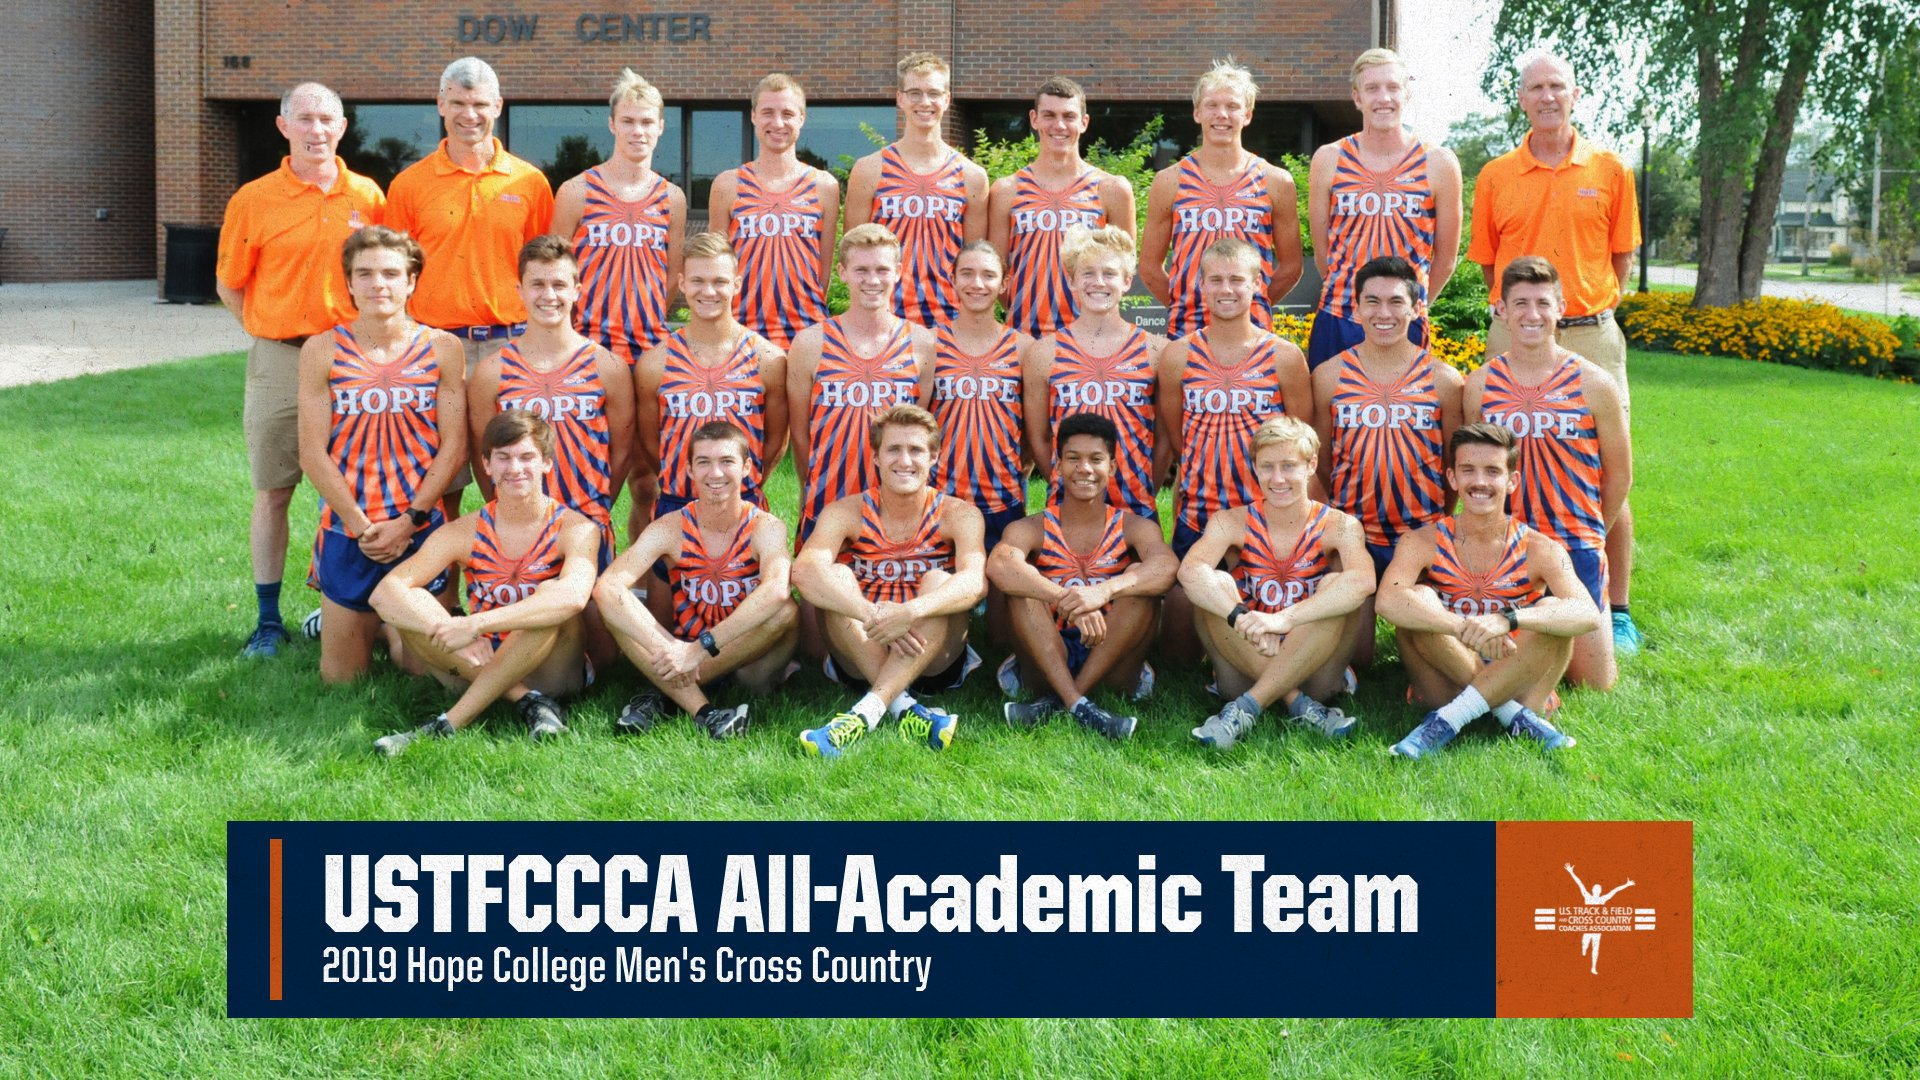 Men's cross country runners pose together for a team portrait.